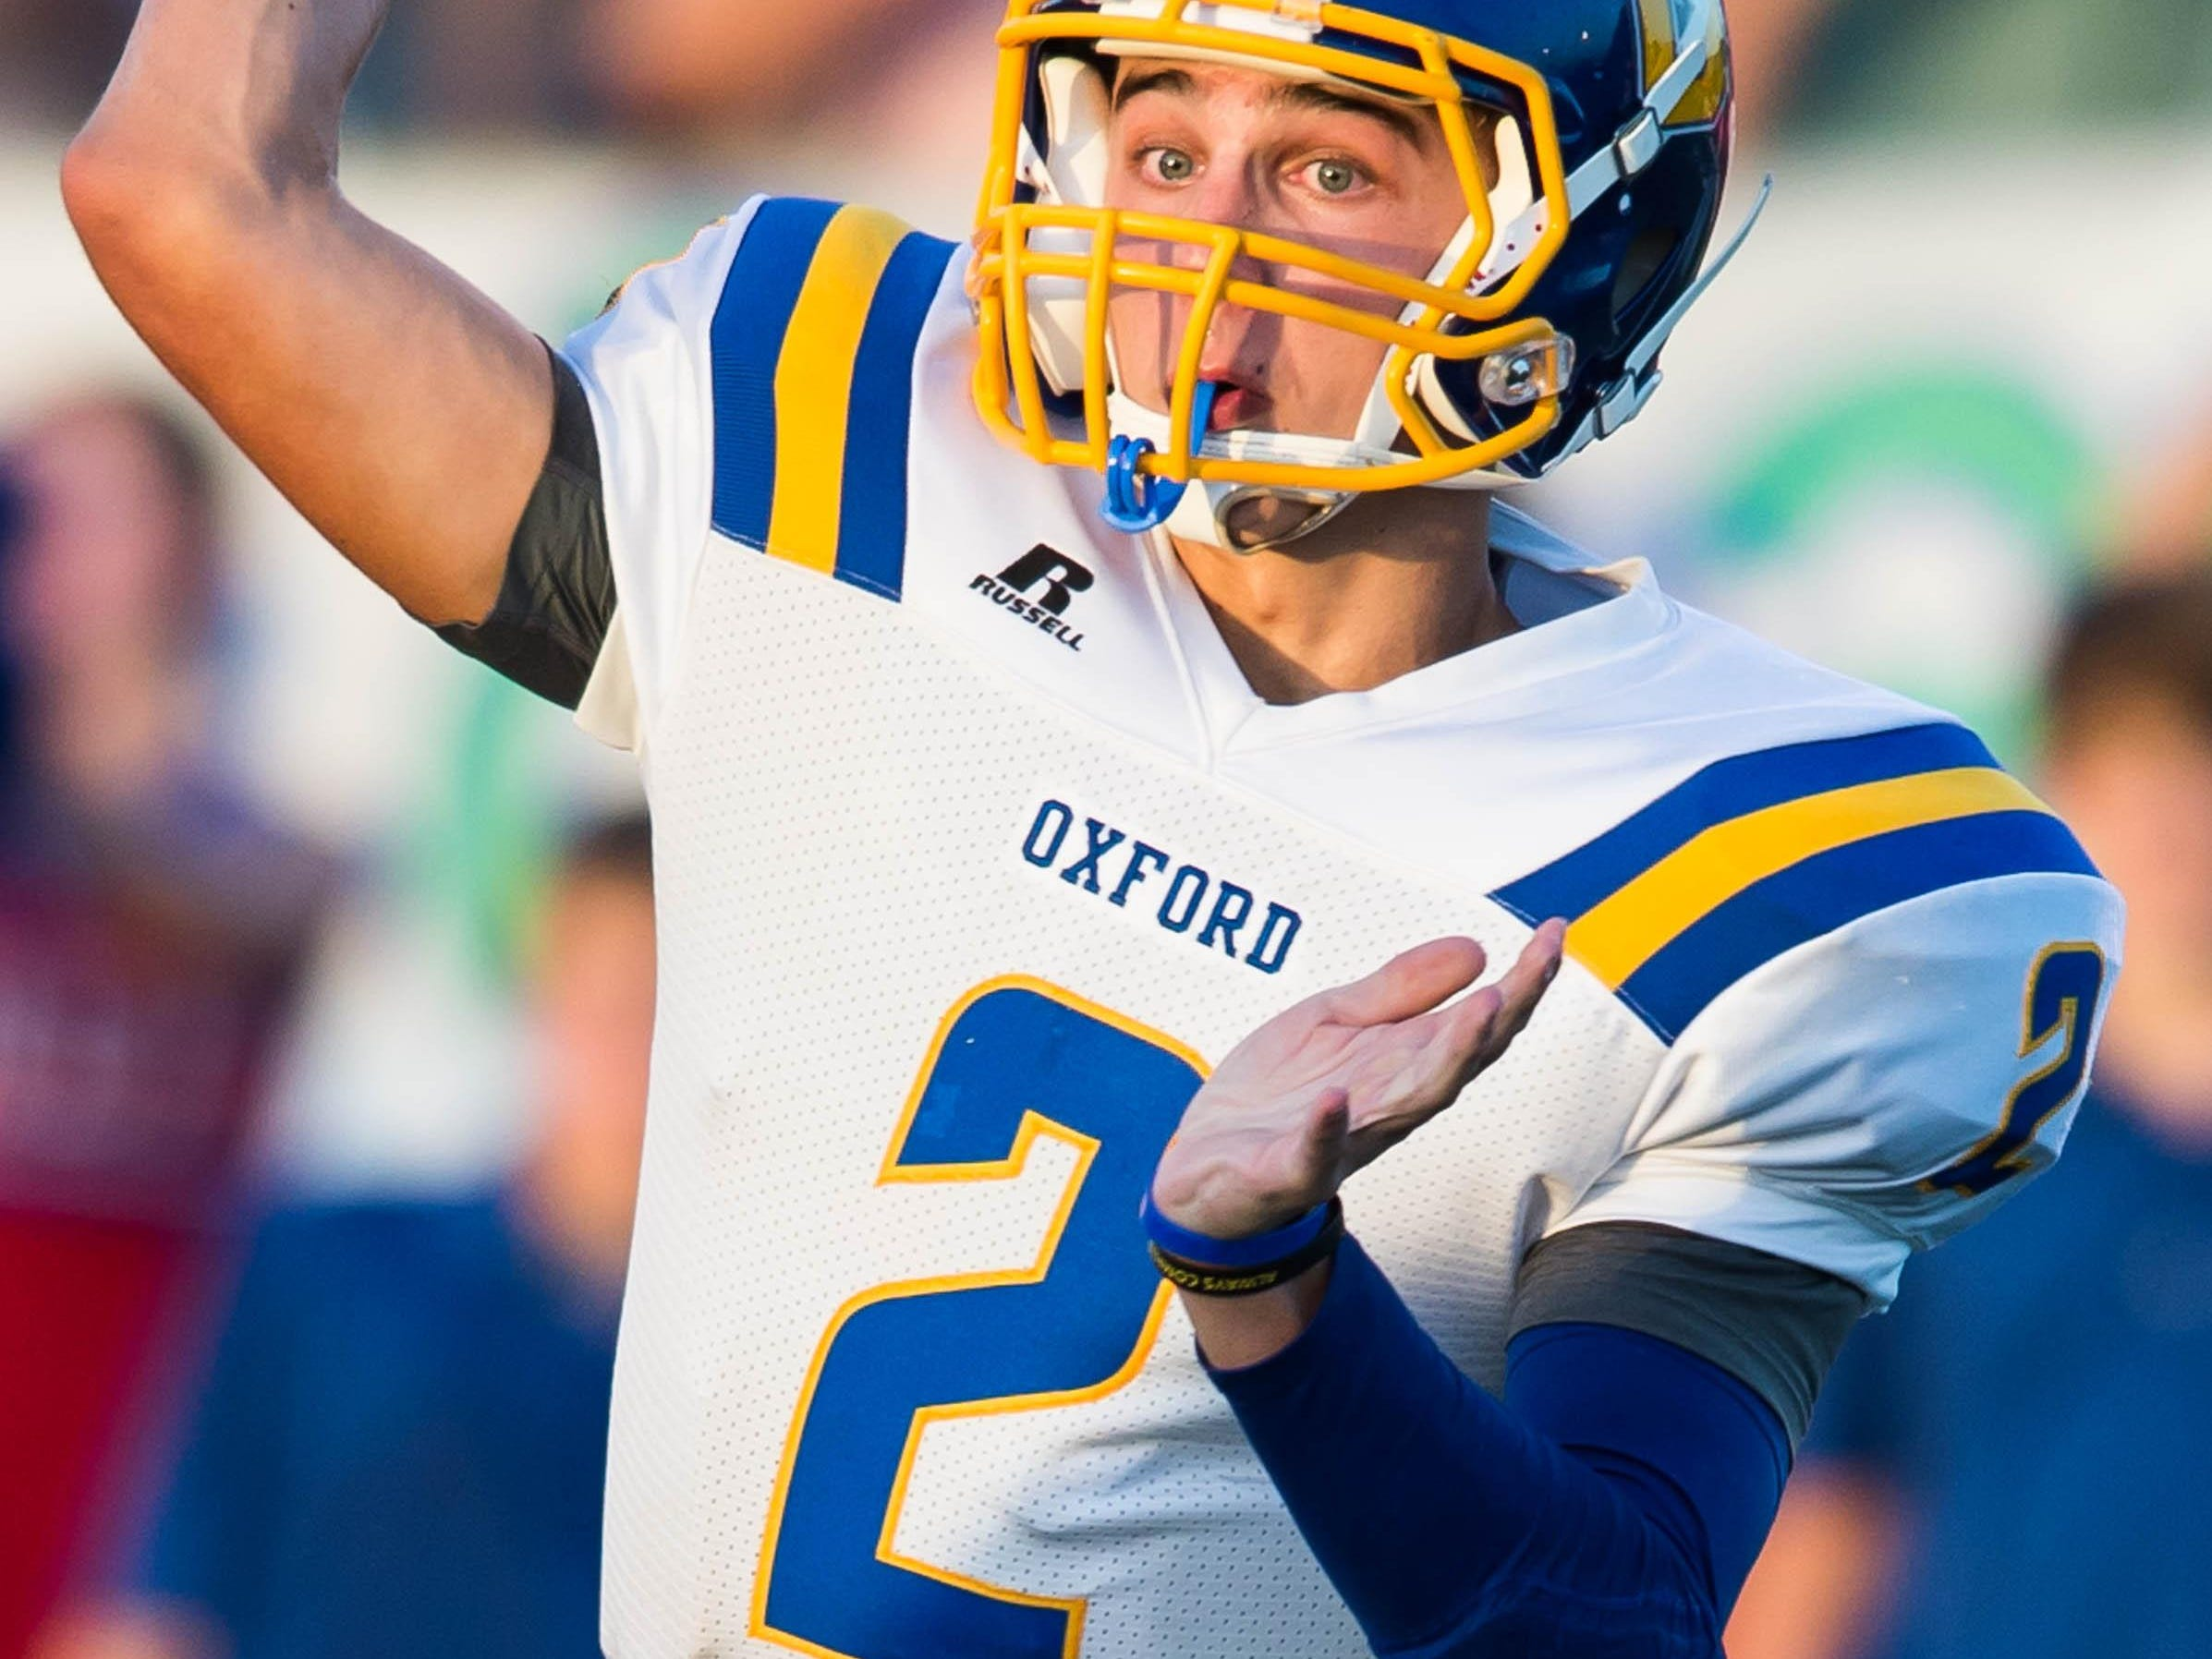 Oxford quarterback Jack Abraham was impressive last season. He threw for 3,304 yards and 35 touchdowns while completing 59.7 percent of his passes.